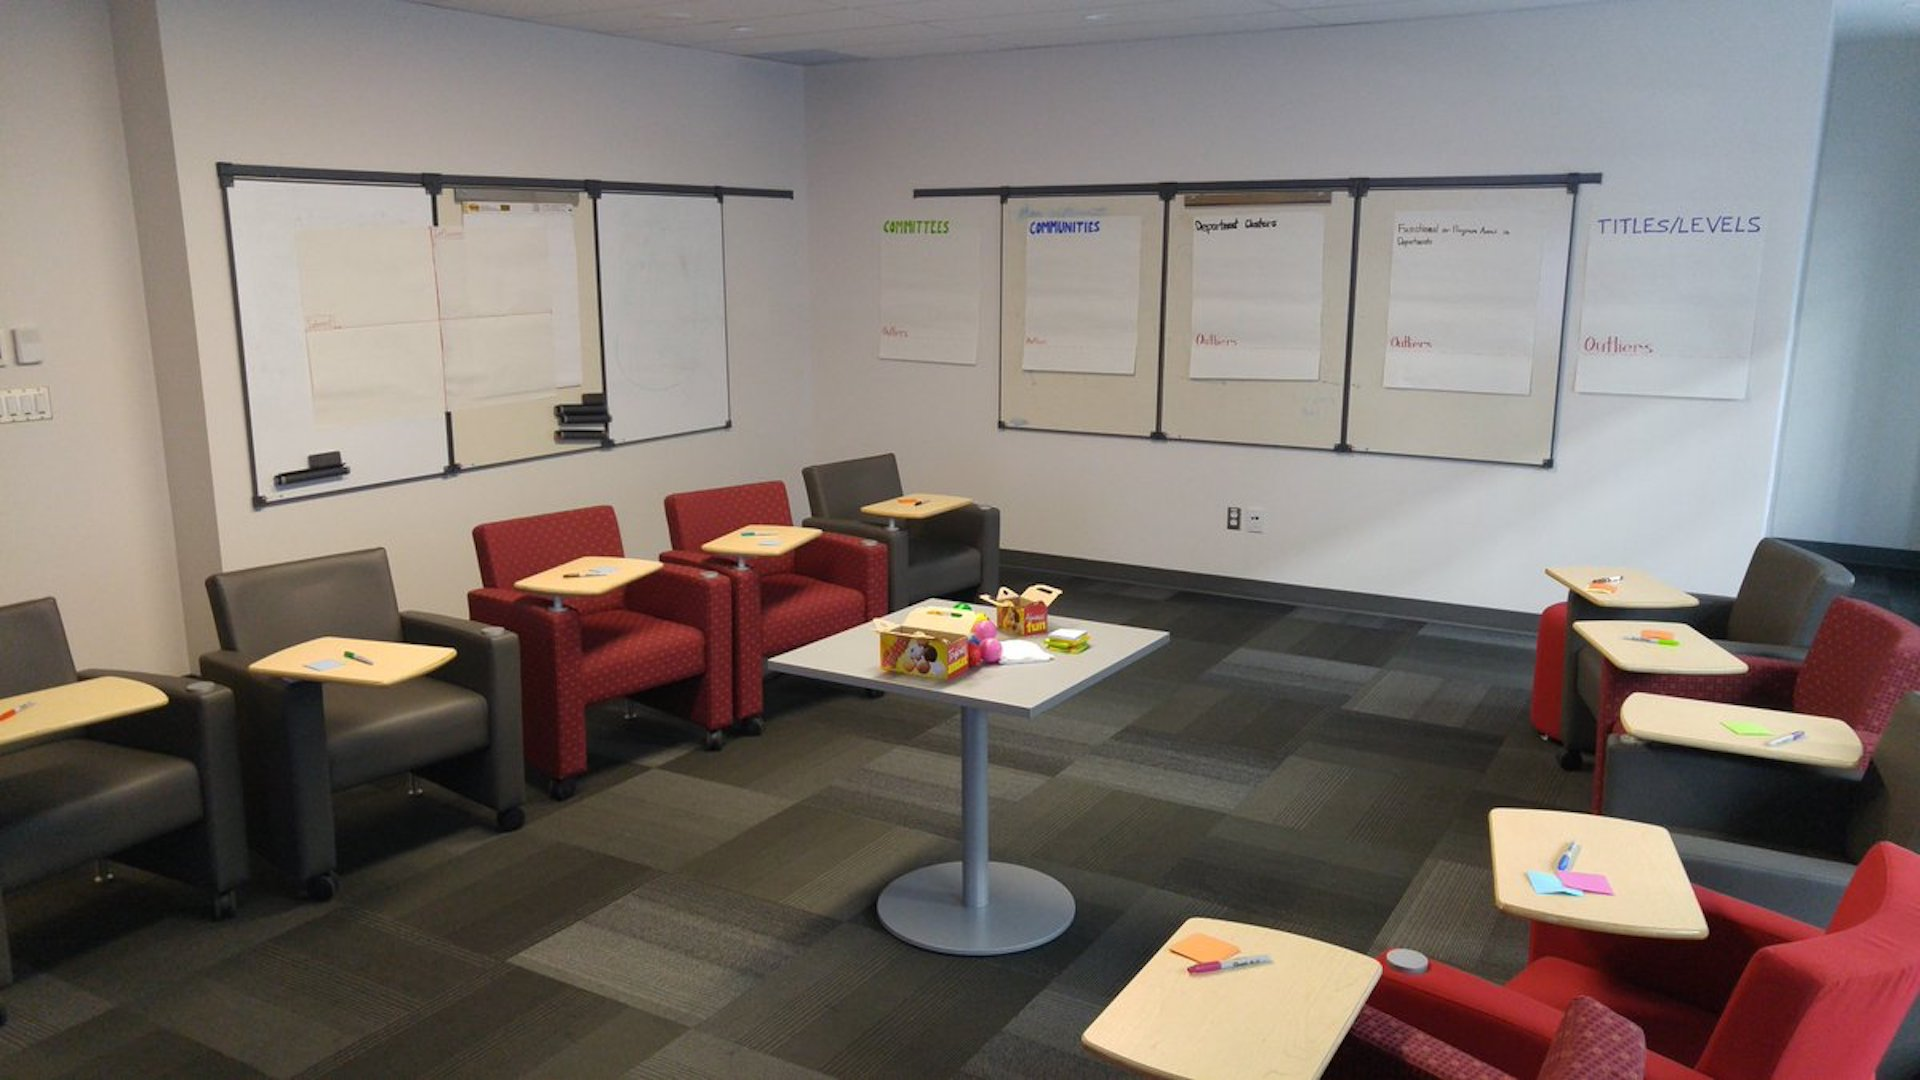 A room with empty chairs with sticky notes and markers on each. A box of donuts is on a table in the middle of the room. Whiteboards are on the walls surrounding the room.